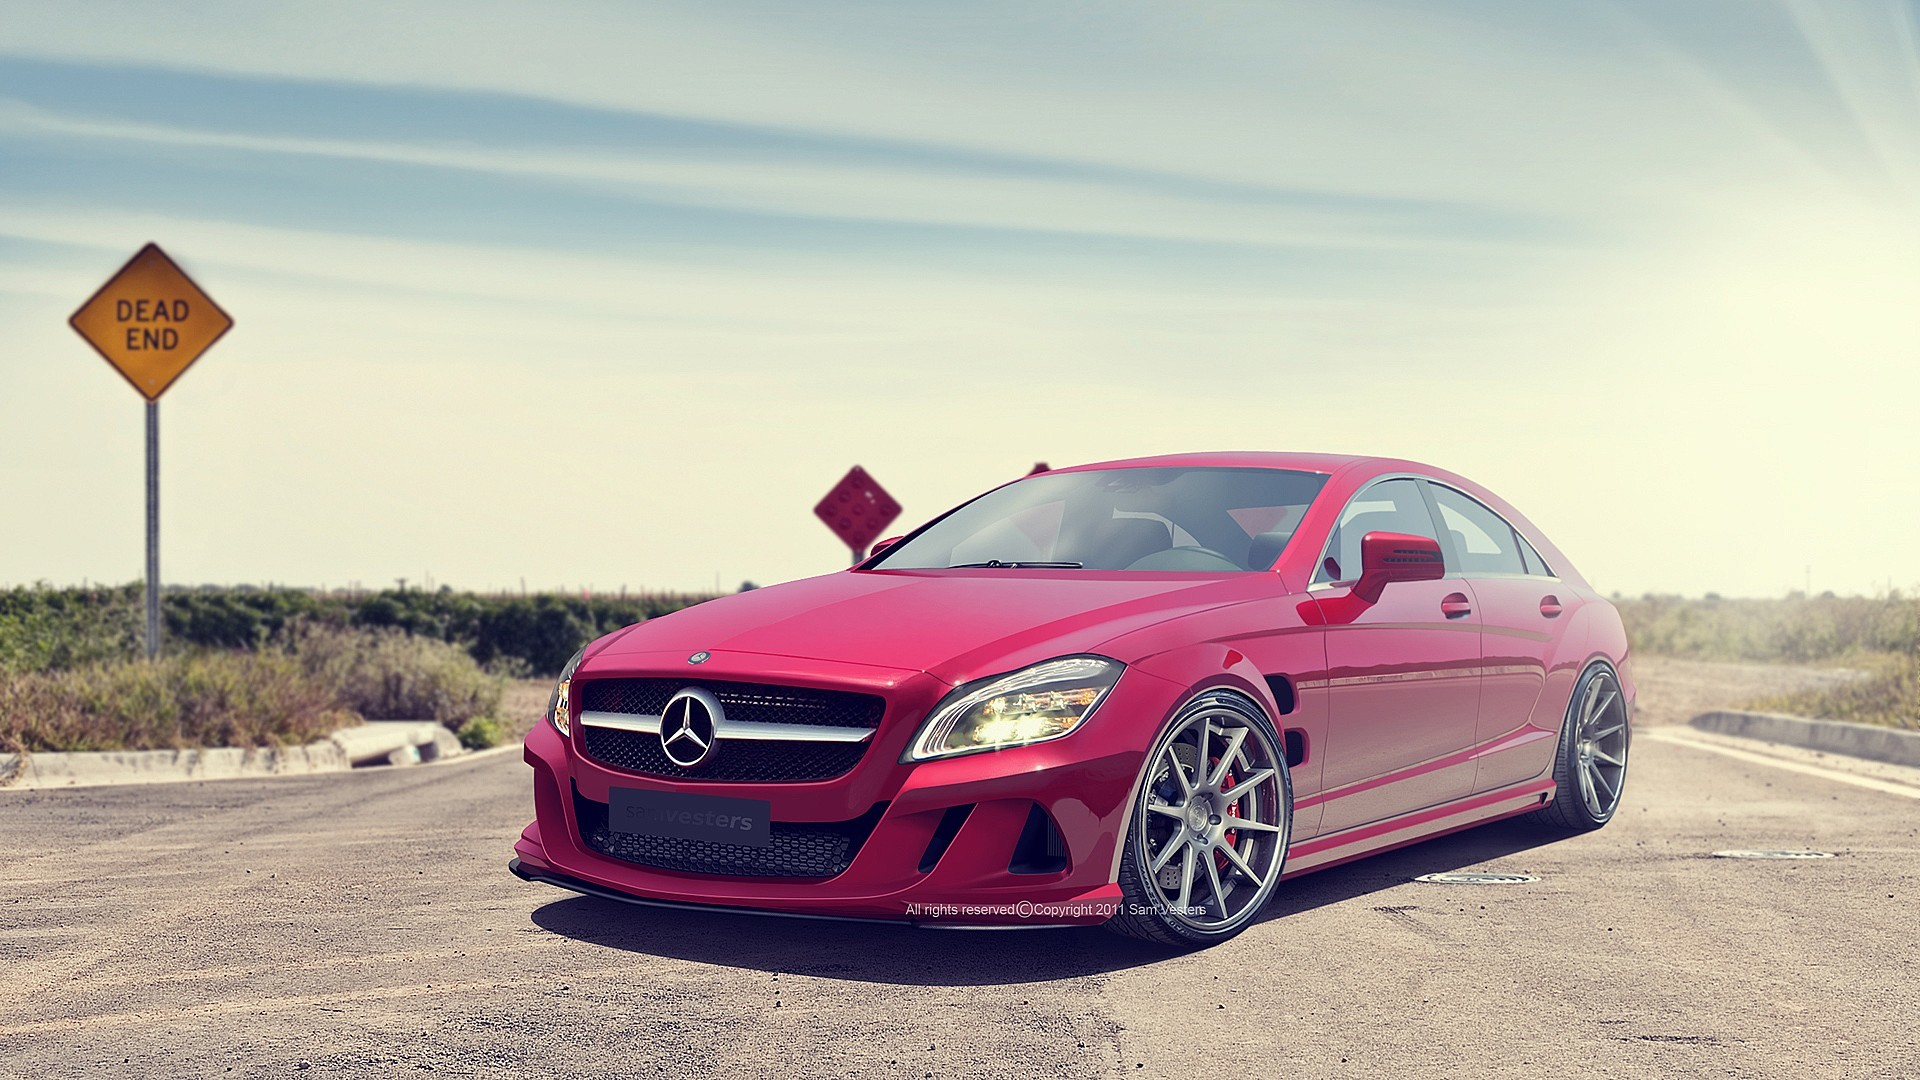 cars tuning Mercedes-Benz HD Wallpaper